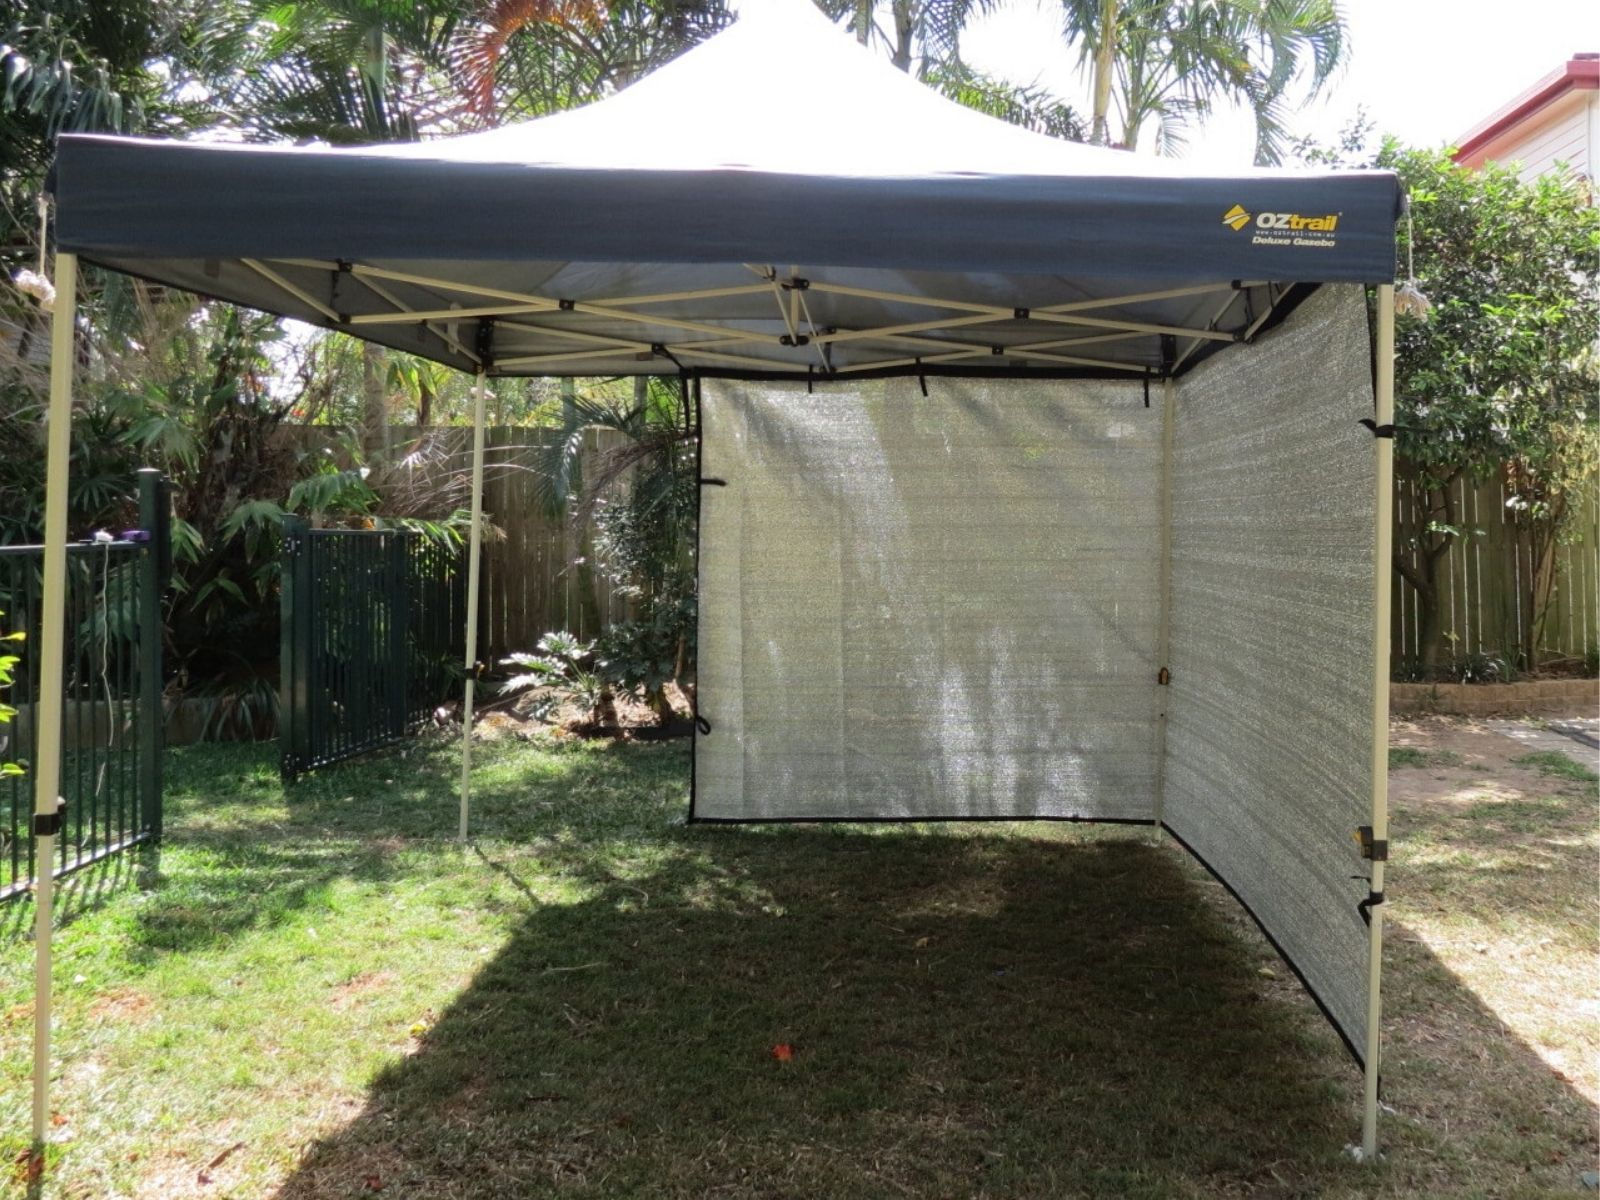 3m Gazebo with 4.9m x 2m Cool Shade wall wrapped around sides to create protection from the sun